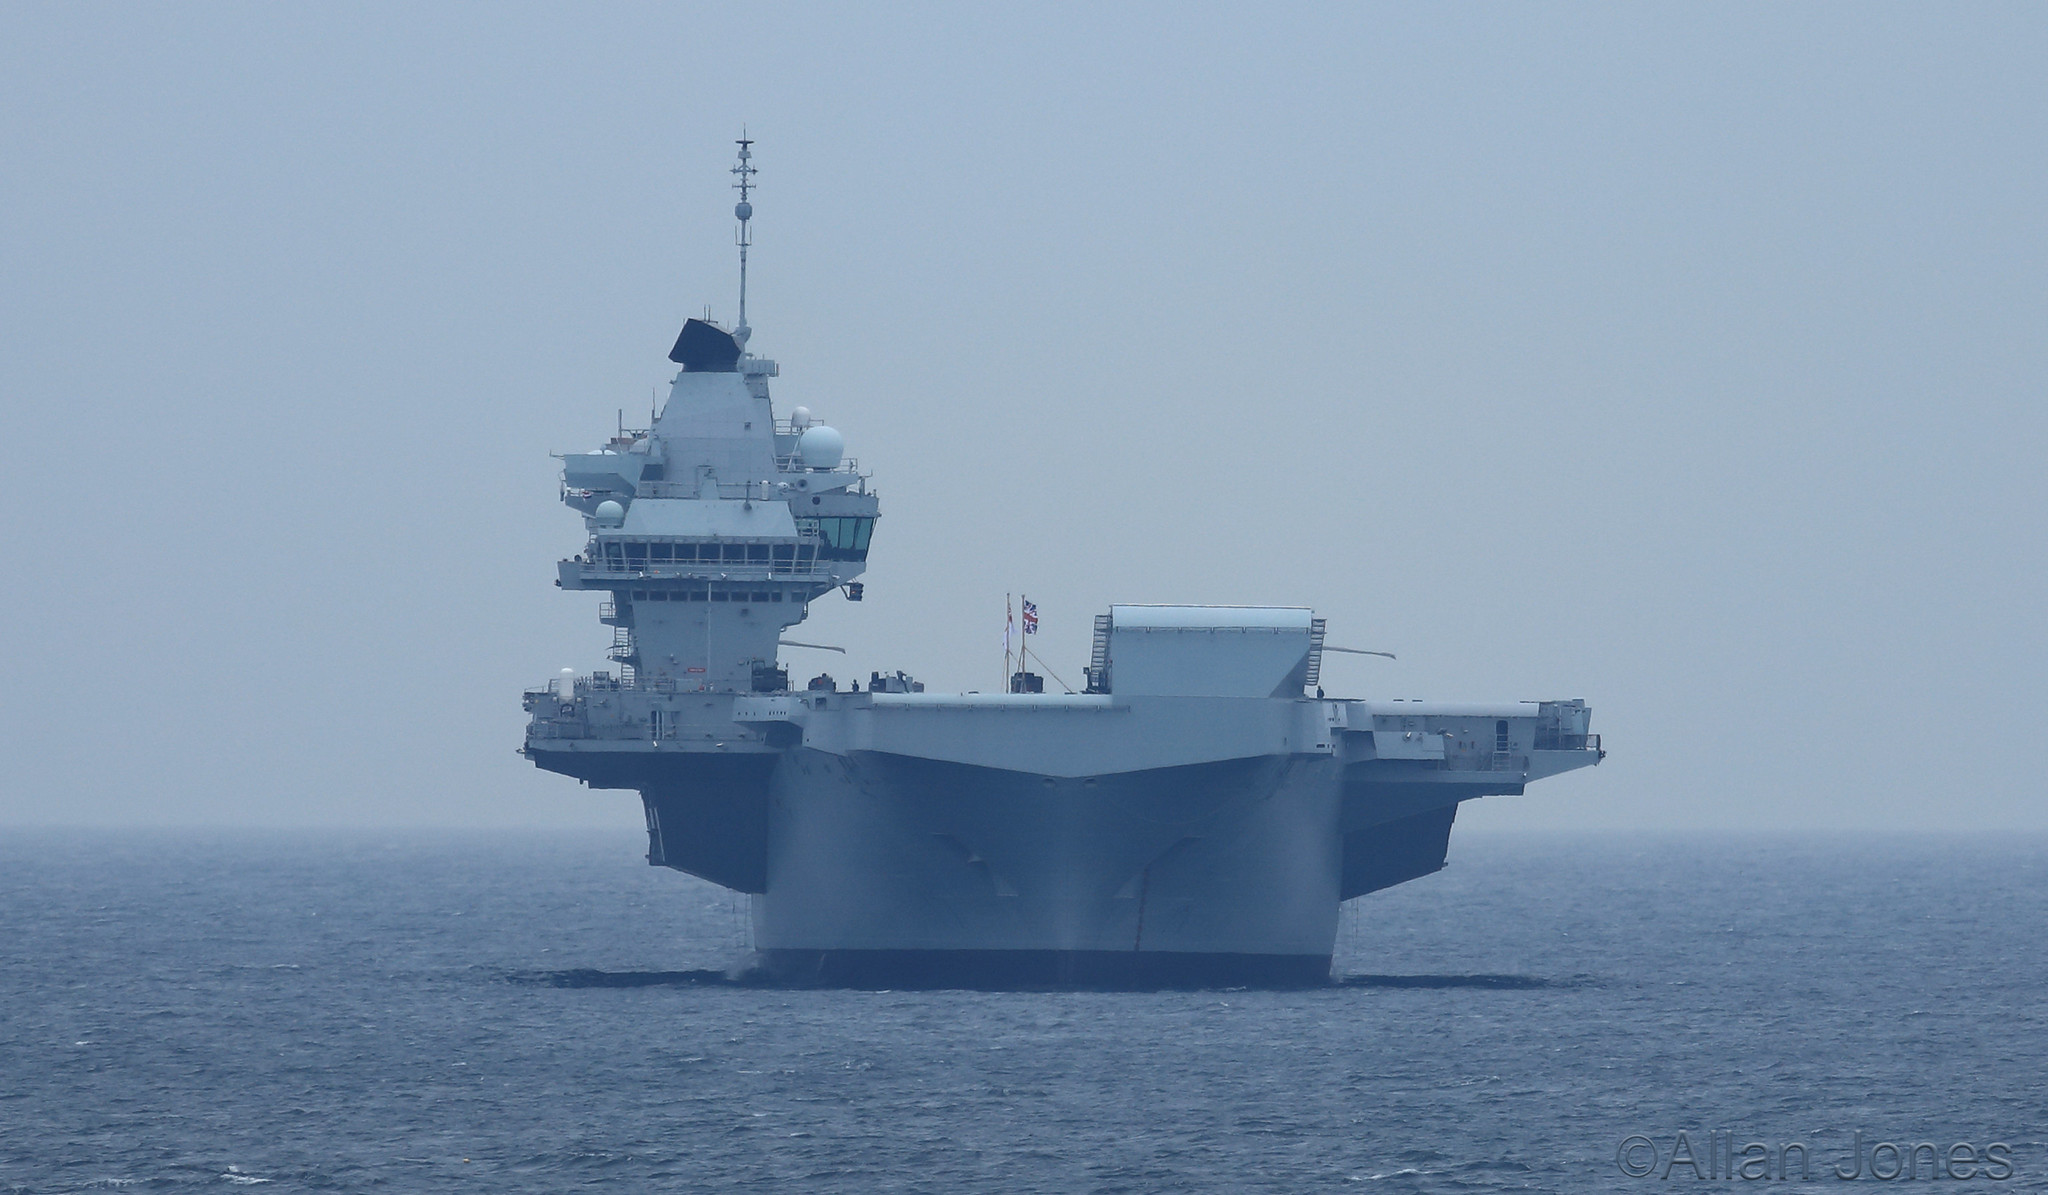 Aircraft Carrier (HMS Queen Elizabeth & HMS Prince of Wales) - Page 31 48113840412_5597d0c373_k